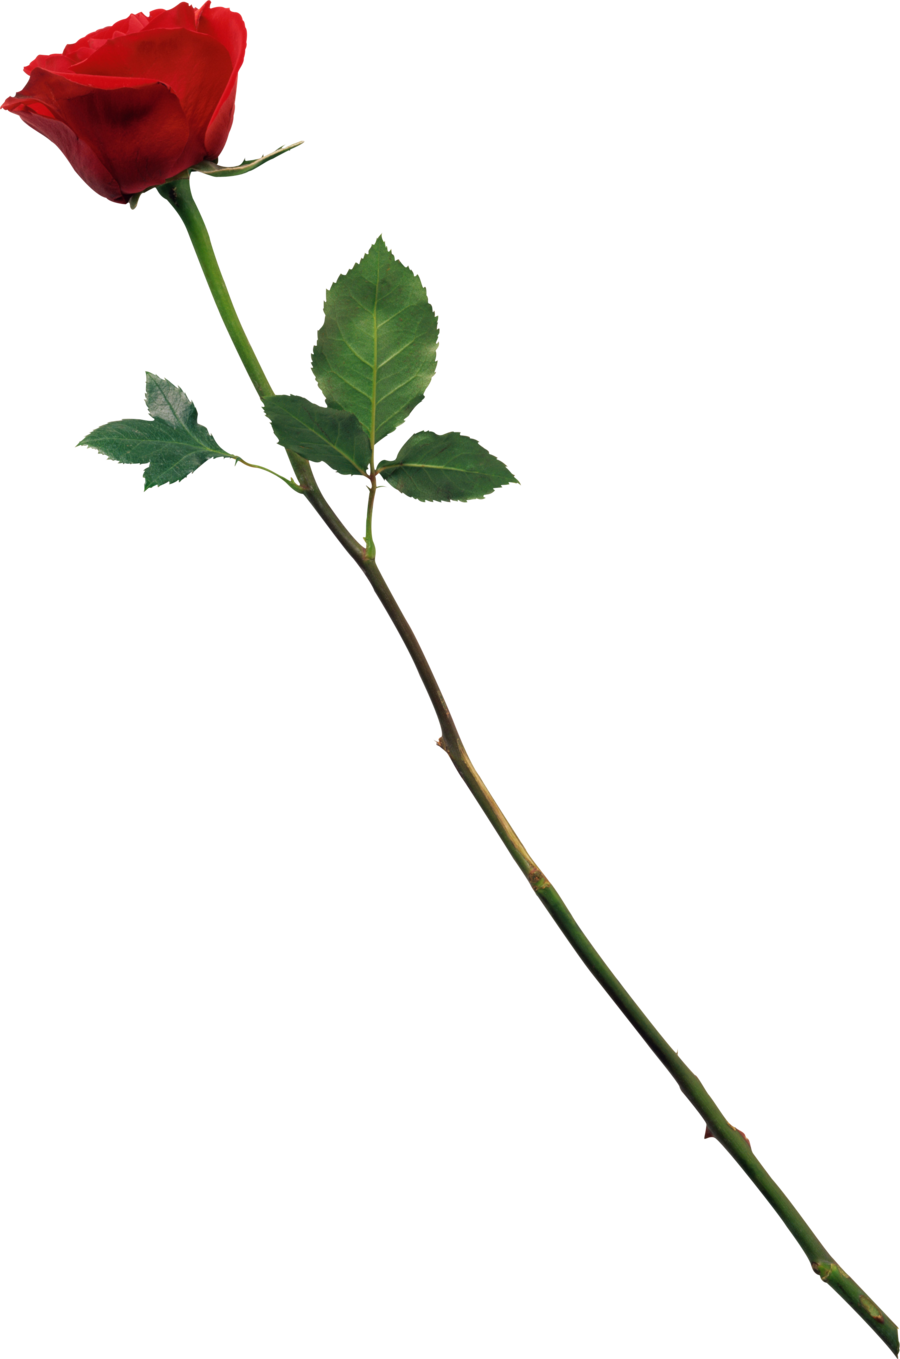 Free Rose Png, Download Free Clip Art, Free Clip Art on Clipart Library.